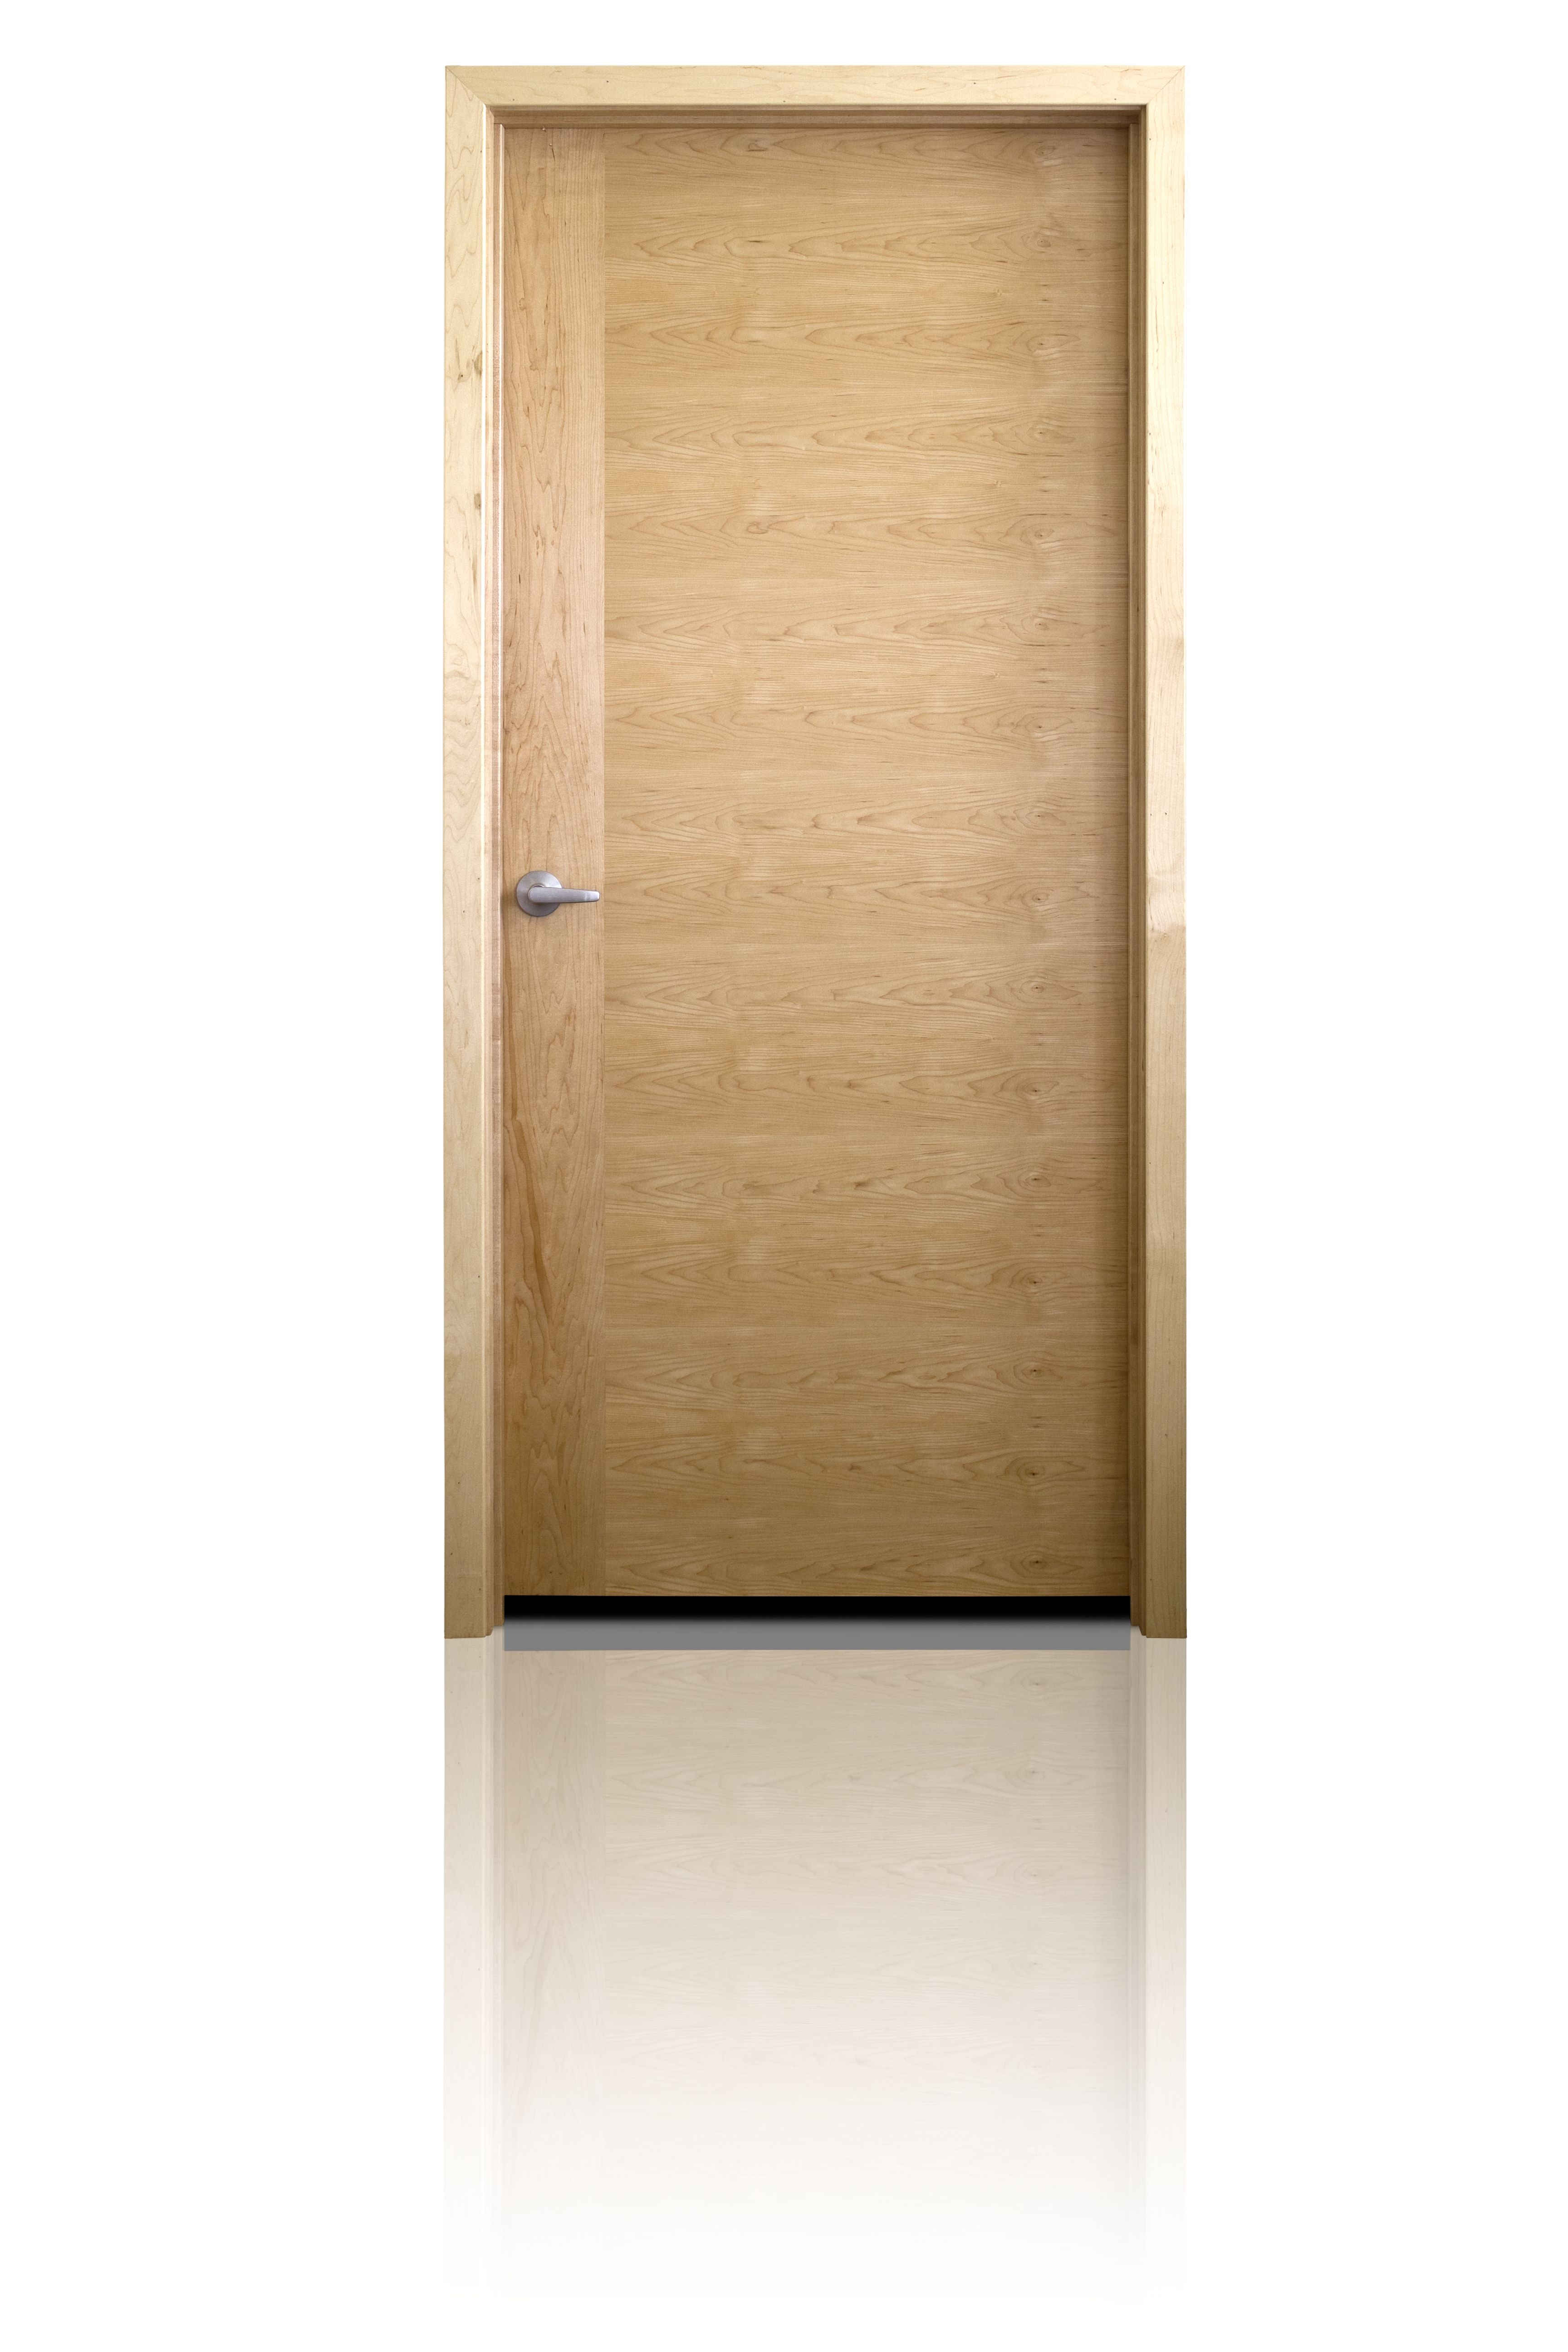 htm studios st acoustic recording soundproof door maple olaf room piano interior for doors